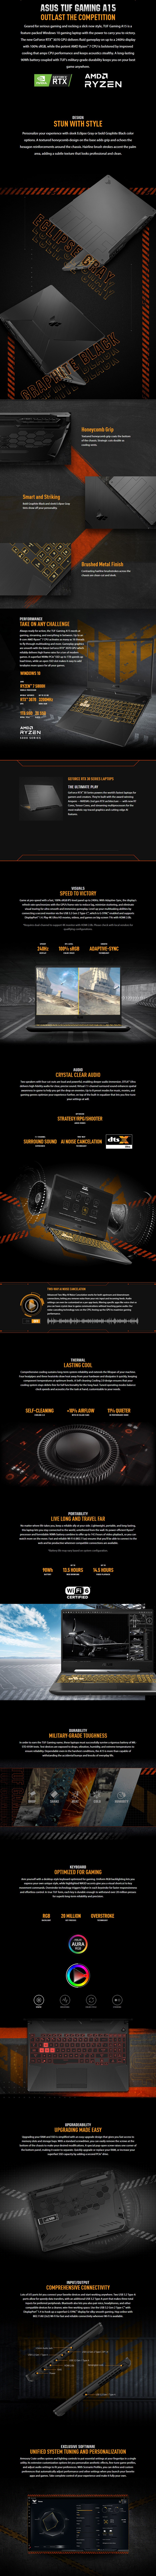 """ASUS TUF Gaming A15 15.6"""" 240Hz Gaming Laptop R7-5800H 16GB 1TB RTX3070 W10H - Overview 1"""